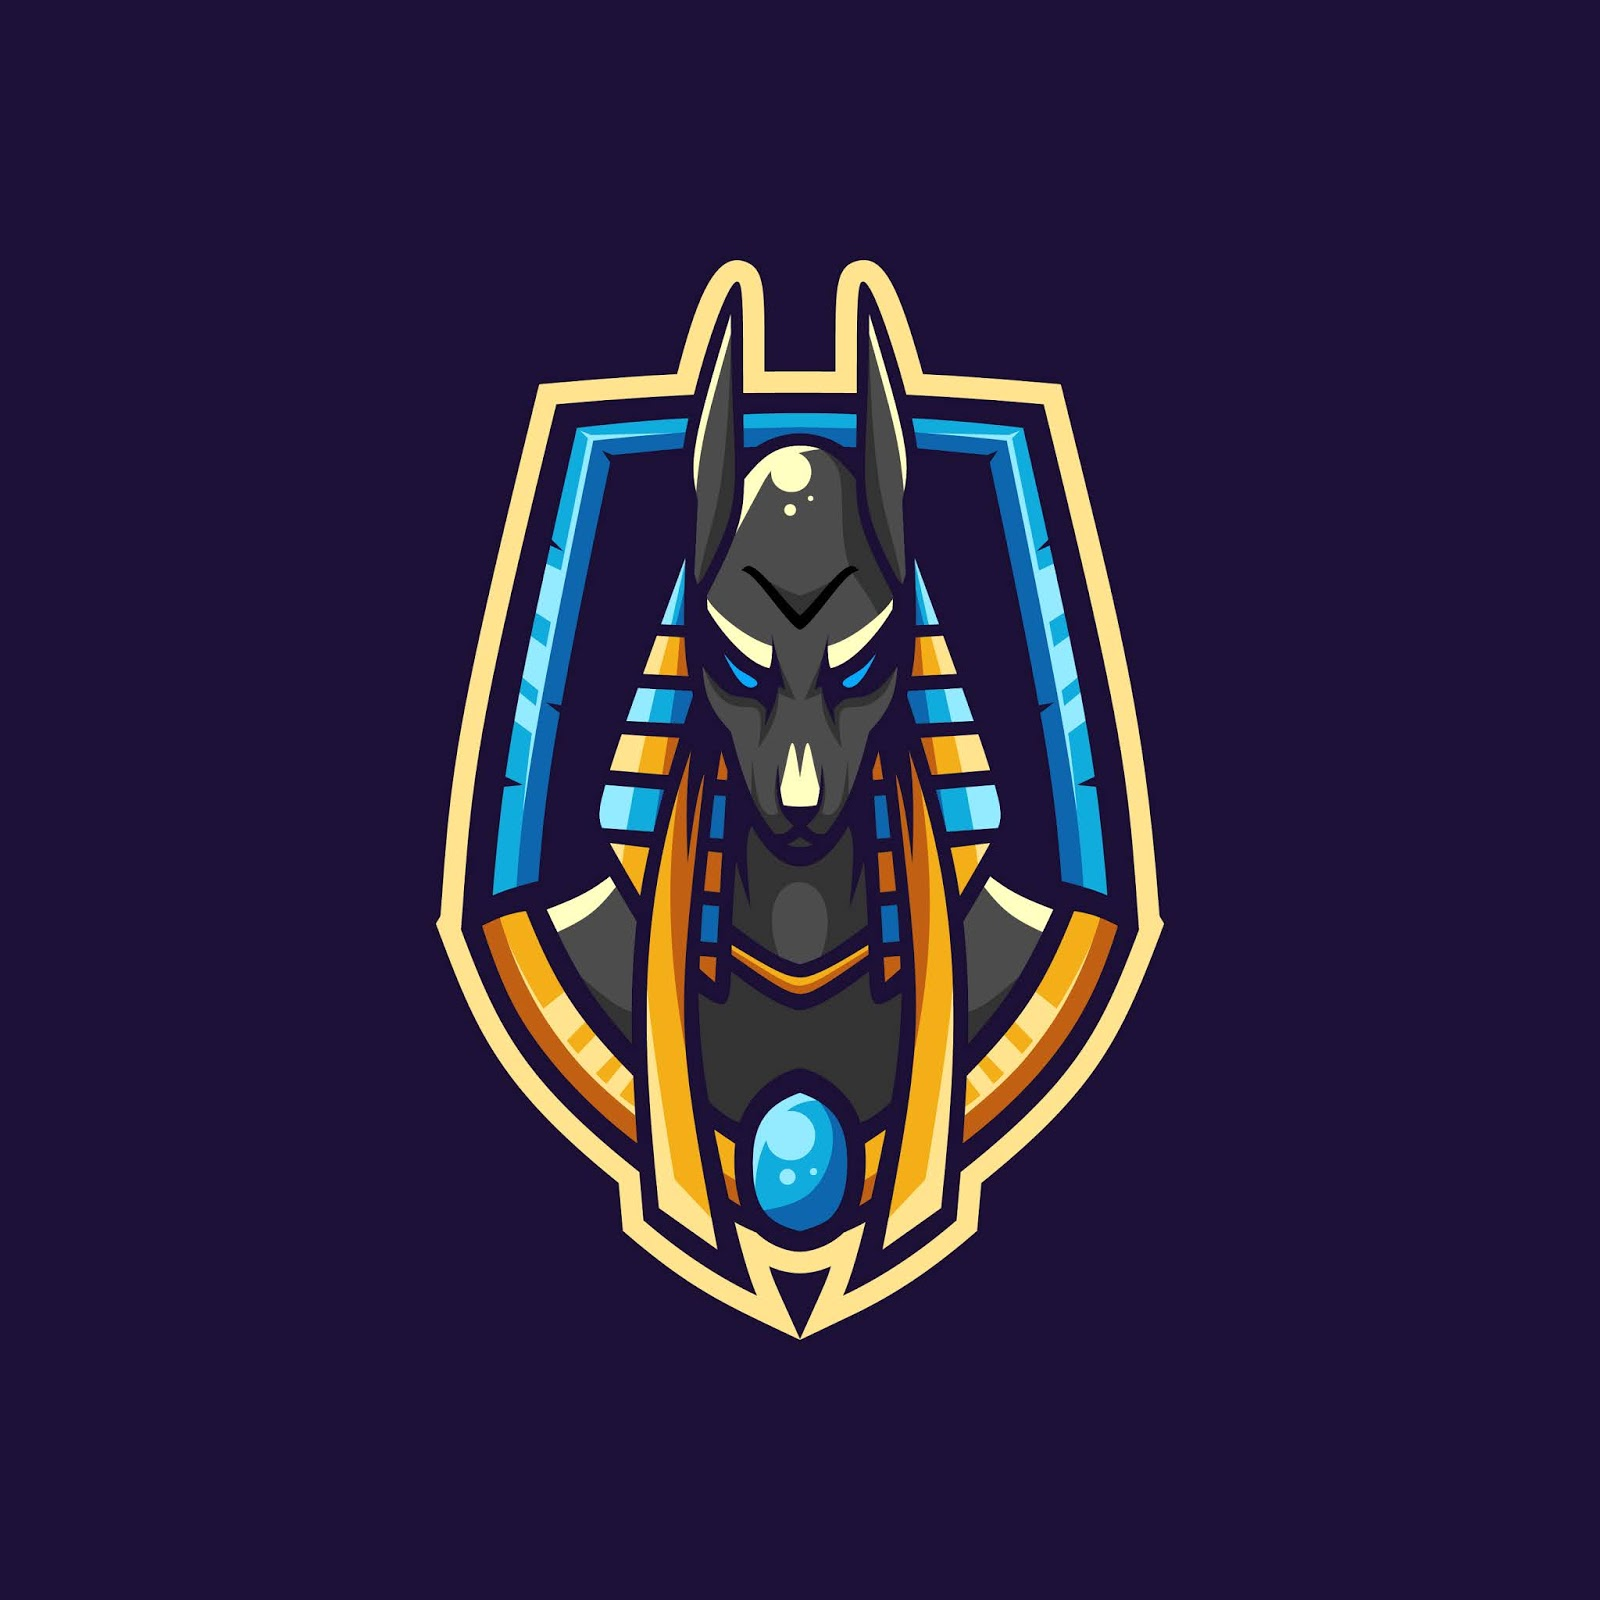 Awesome Anubis Esport Logo Free Download Vector CDR, AI, EPS and PNG Formats